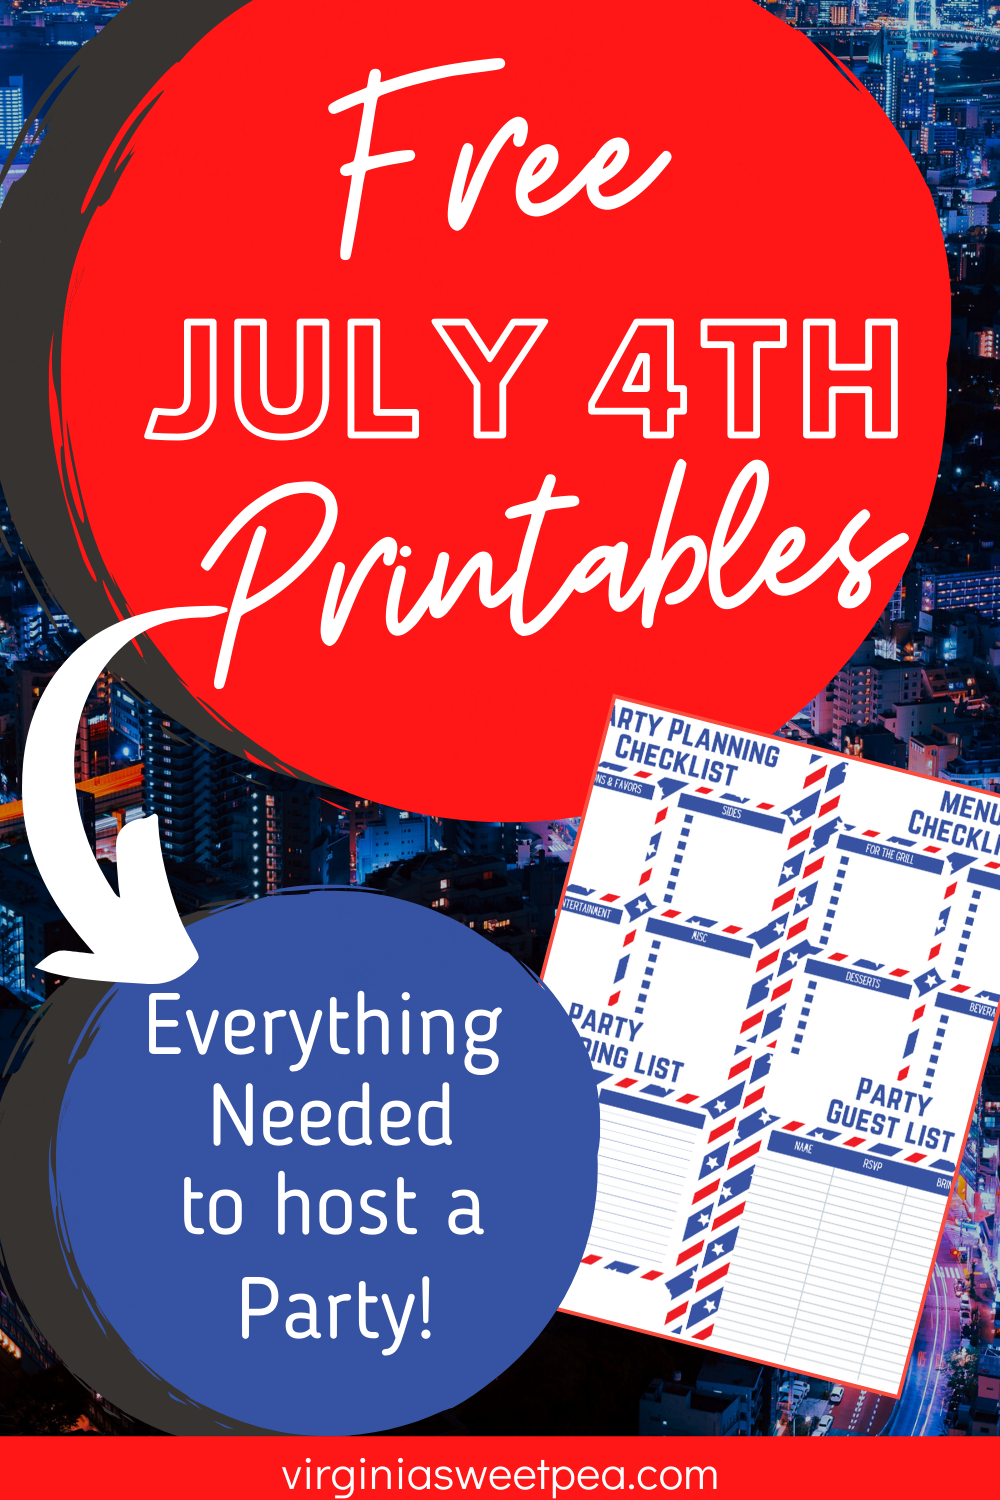 Free Printable 4th of July Party Pack - Plan the ultimate 4th of July party with this FREE printable party pack.  Included are invitations, photo booth accessories, decor to either frame or hang, food tags, and adorable utensil wraps.  Also included is a fun scavenger hunt for the kids!  #freeprintable #4thofJulyprintable #4thofjulyinvitation #4thofjulyprintables  via @spaula